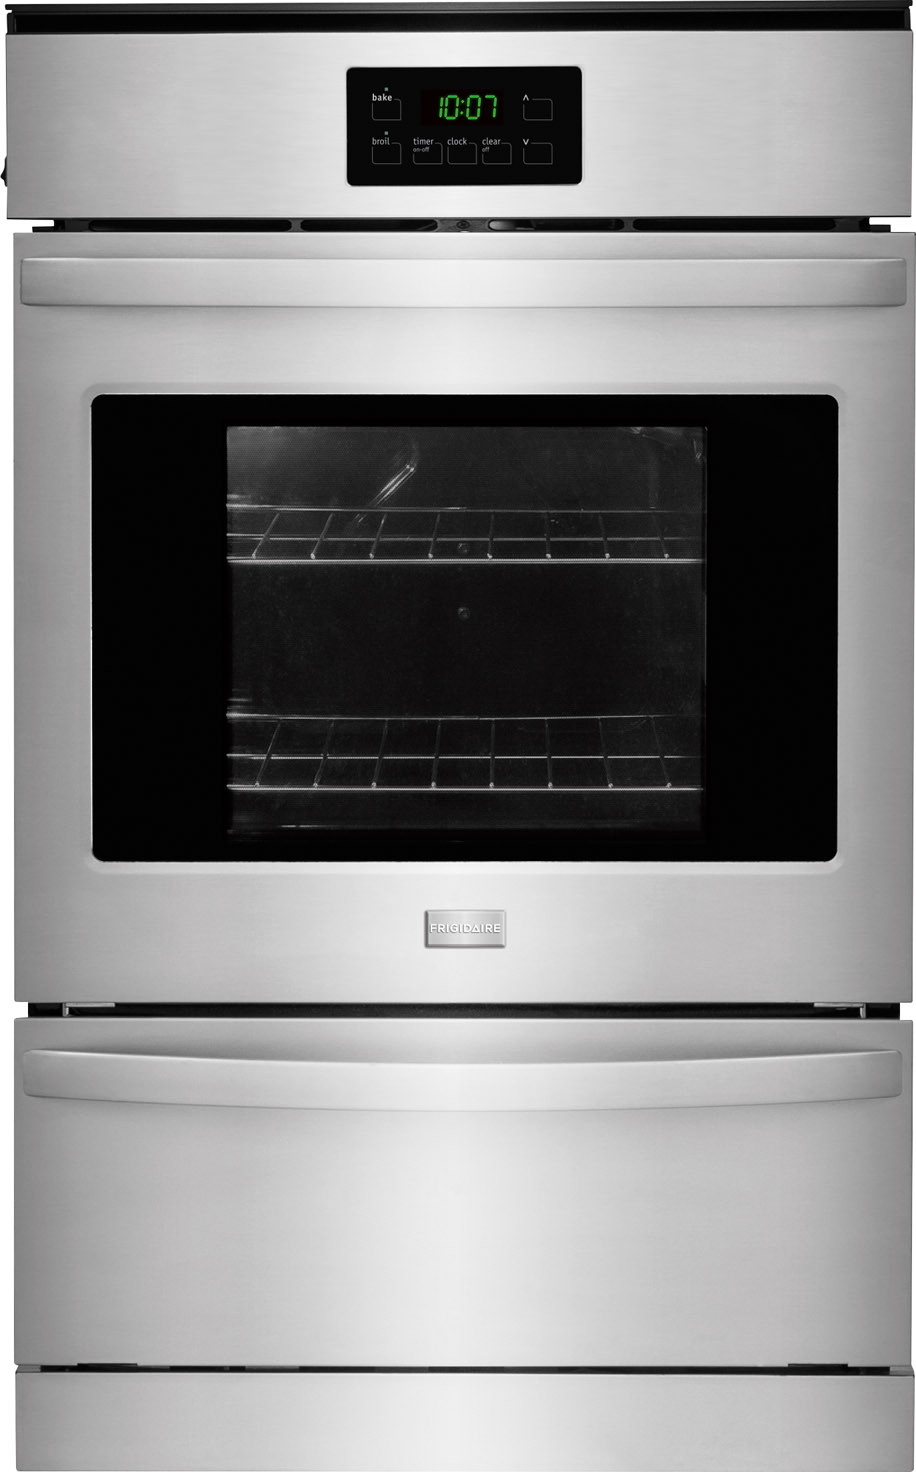 Frigidaire Ffgw2425qs 24 Inch Single Gas Wall Oven With 3 3 Cu Ft Capacity Ready Select Controls Dual Radiant Baking And Roasting Vari Broil Temperature Control Self Cleaning And Ada Compliant Stainless Steel